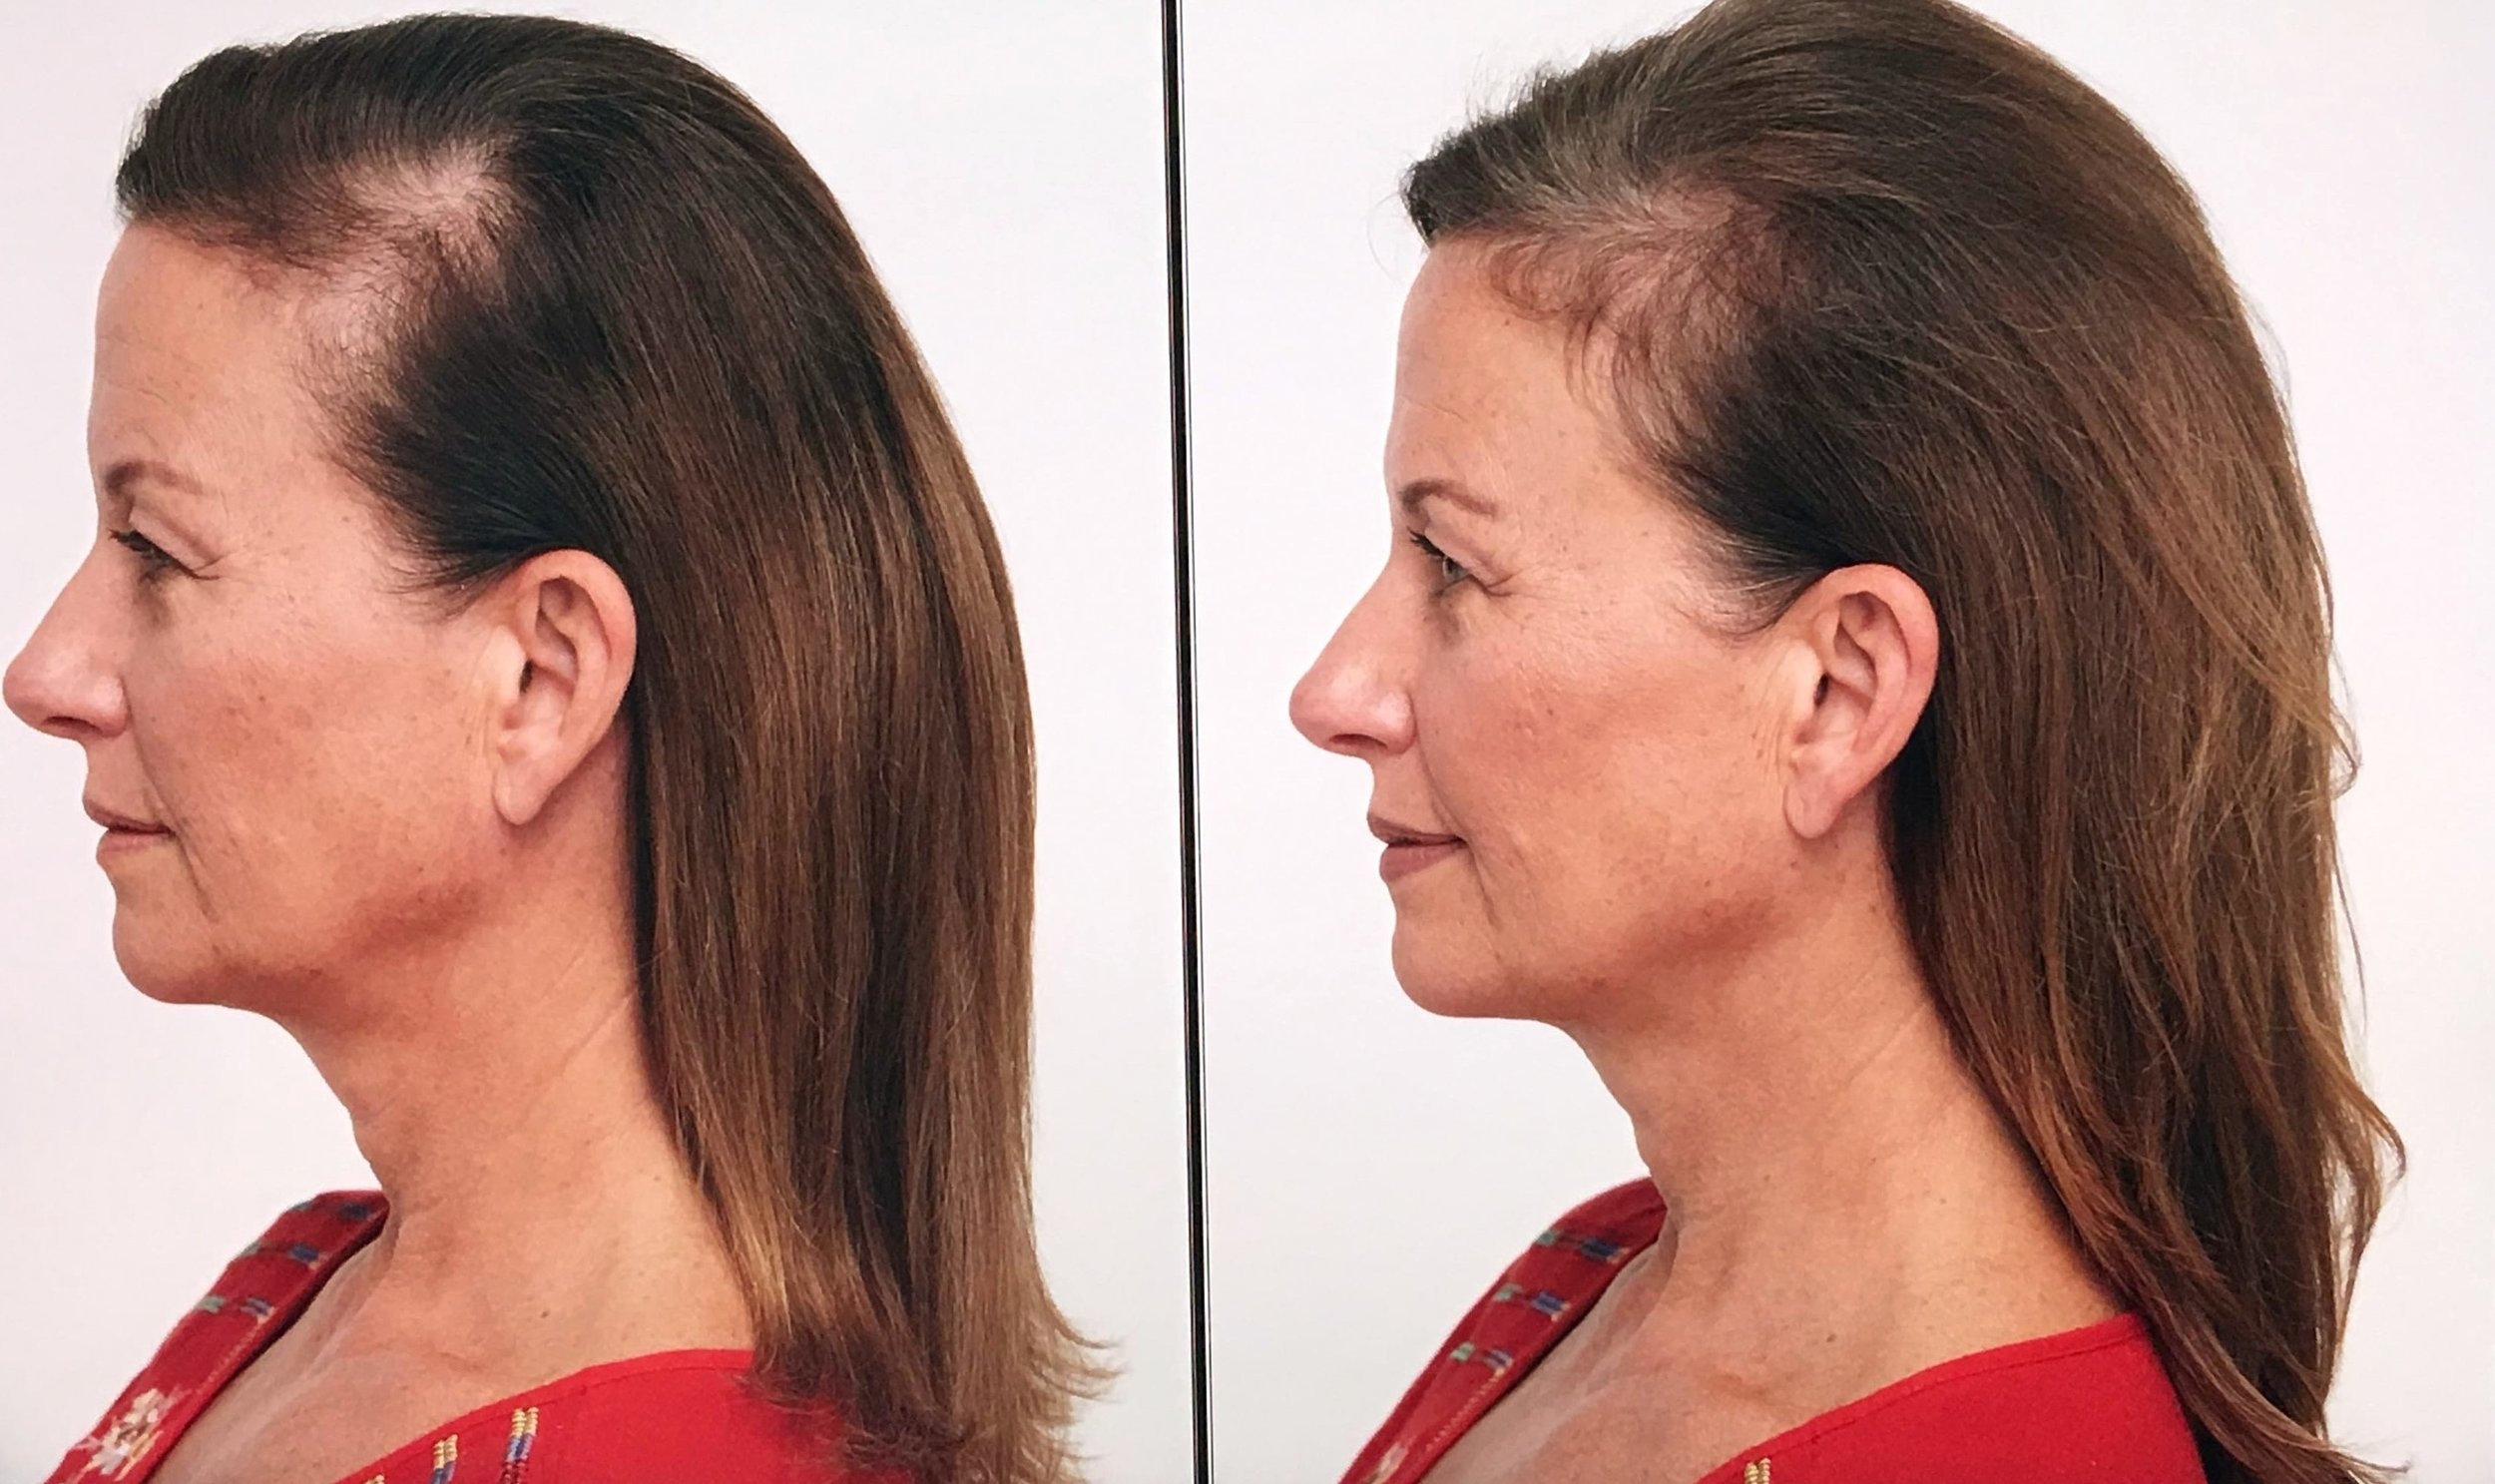 Aly Before After at 30 Days (2) - Edited.jpg